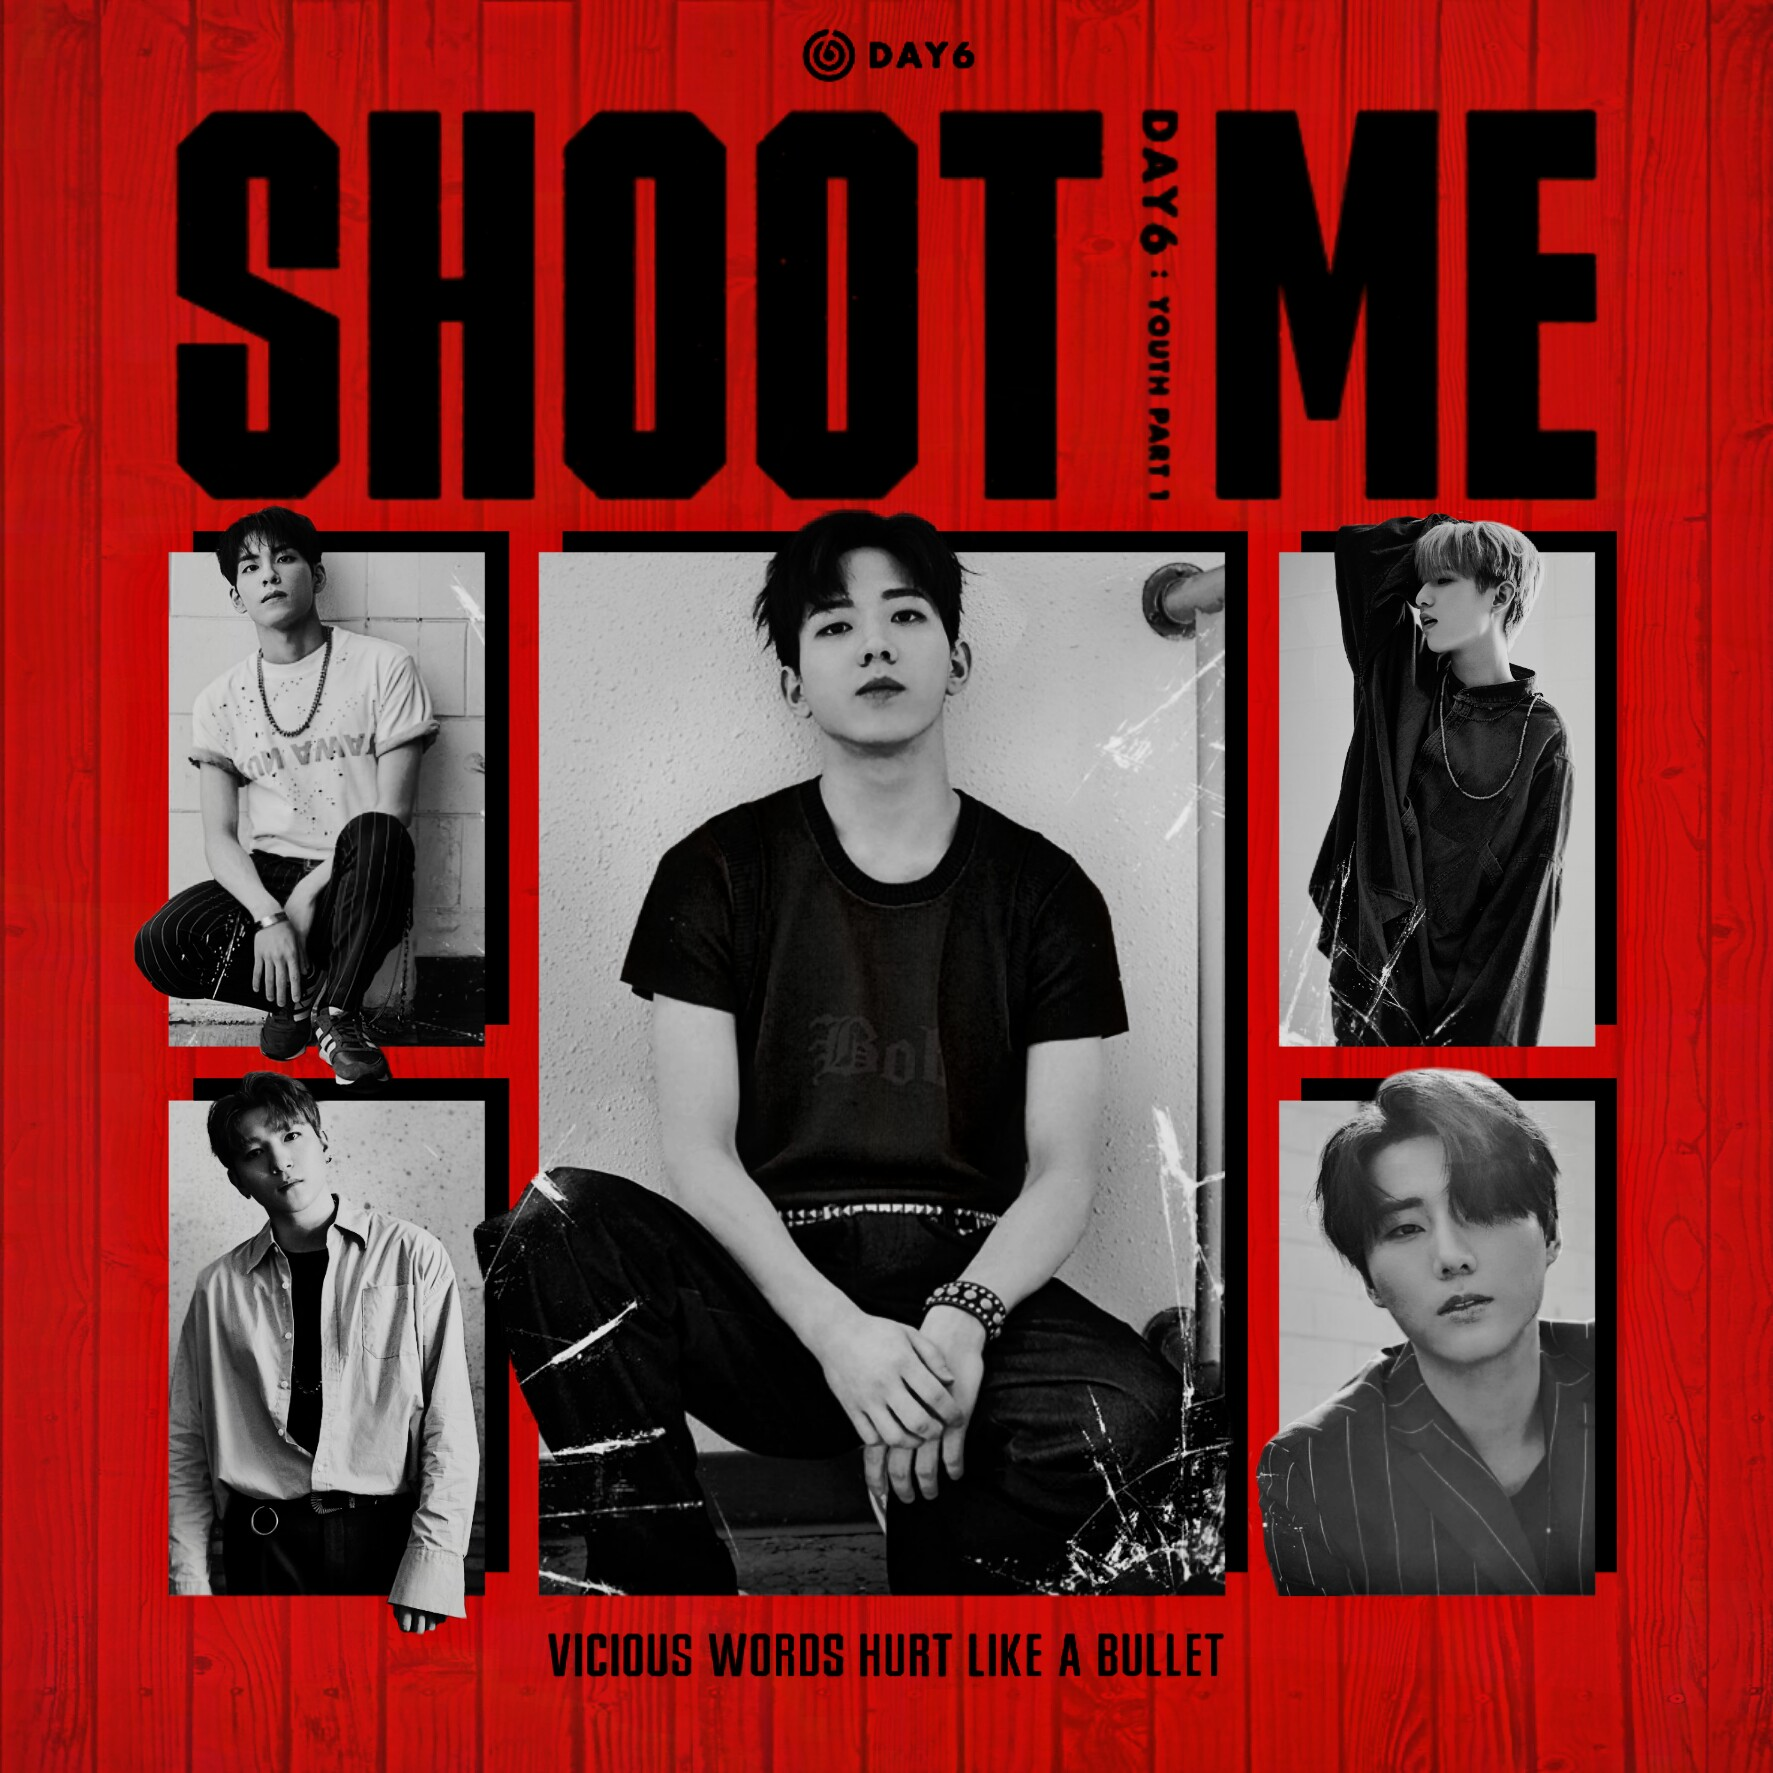 Image result for day6 shoot me